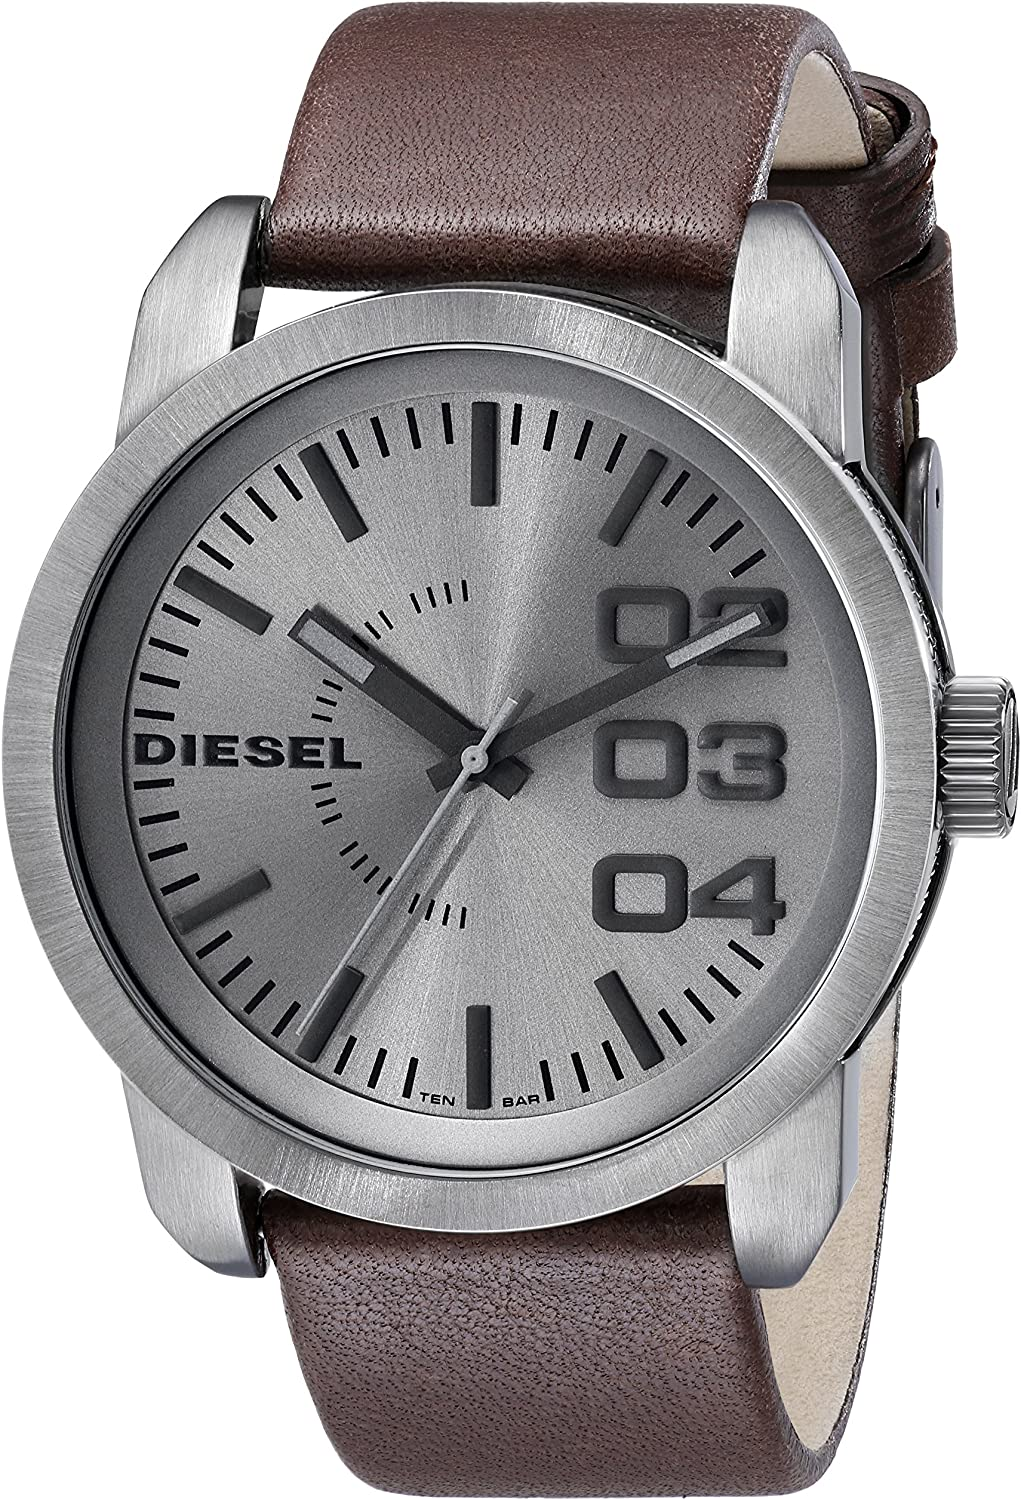 Diesel Men s DZ1467 Double Down Analog Display Analog Quartz Brown Watch